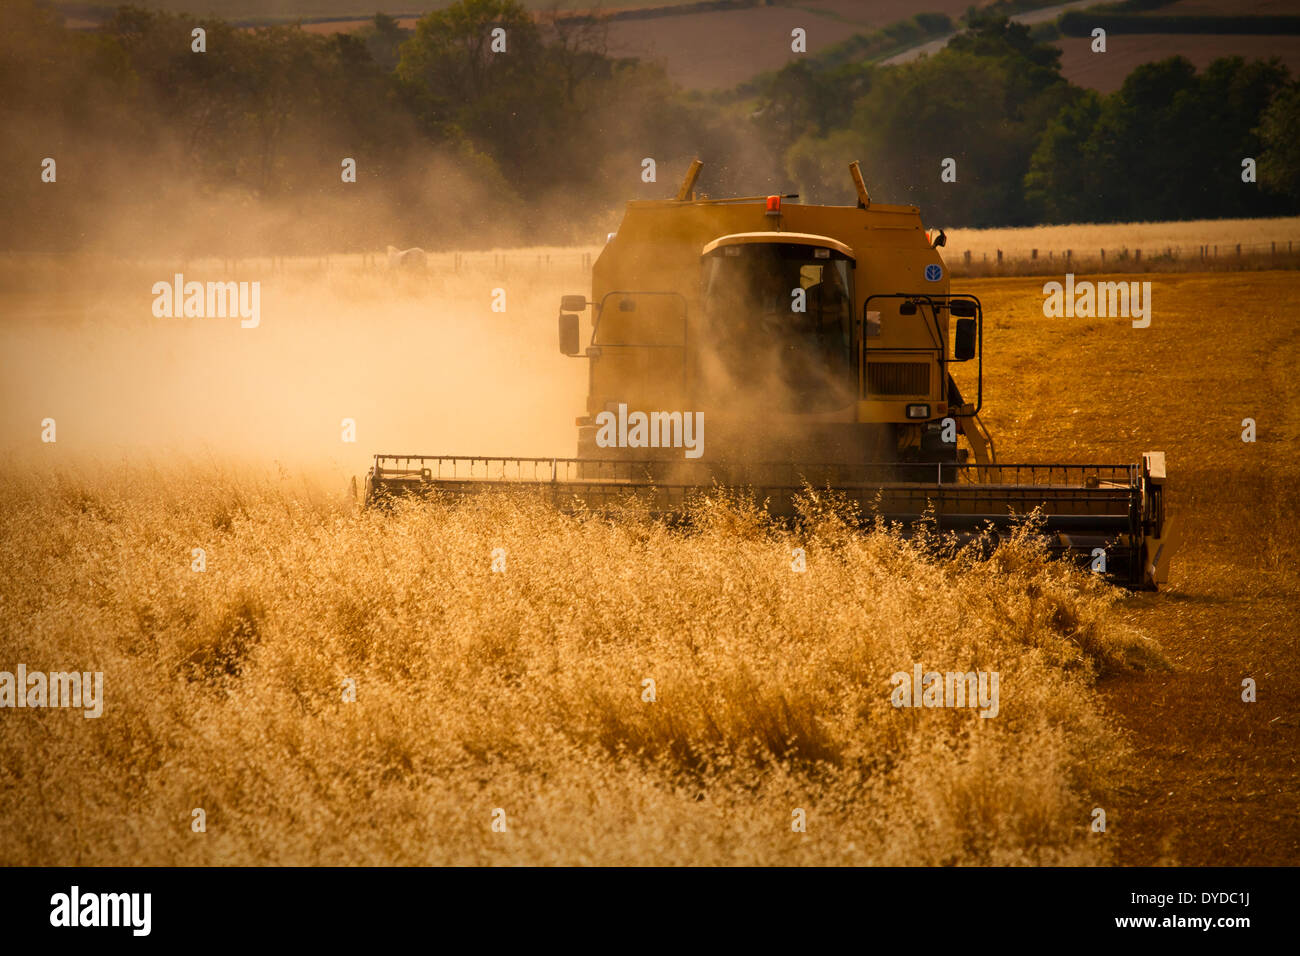 A combine harvester creates a dust cloud. - Stock Image